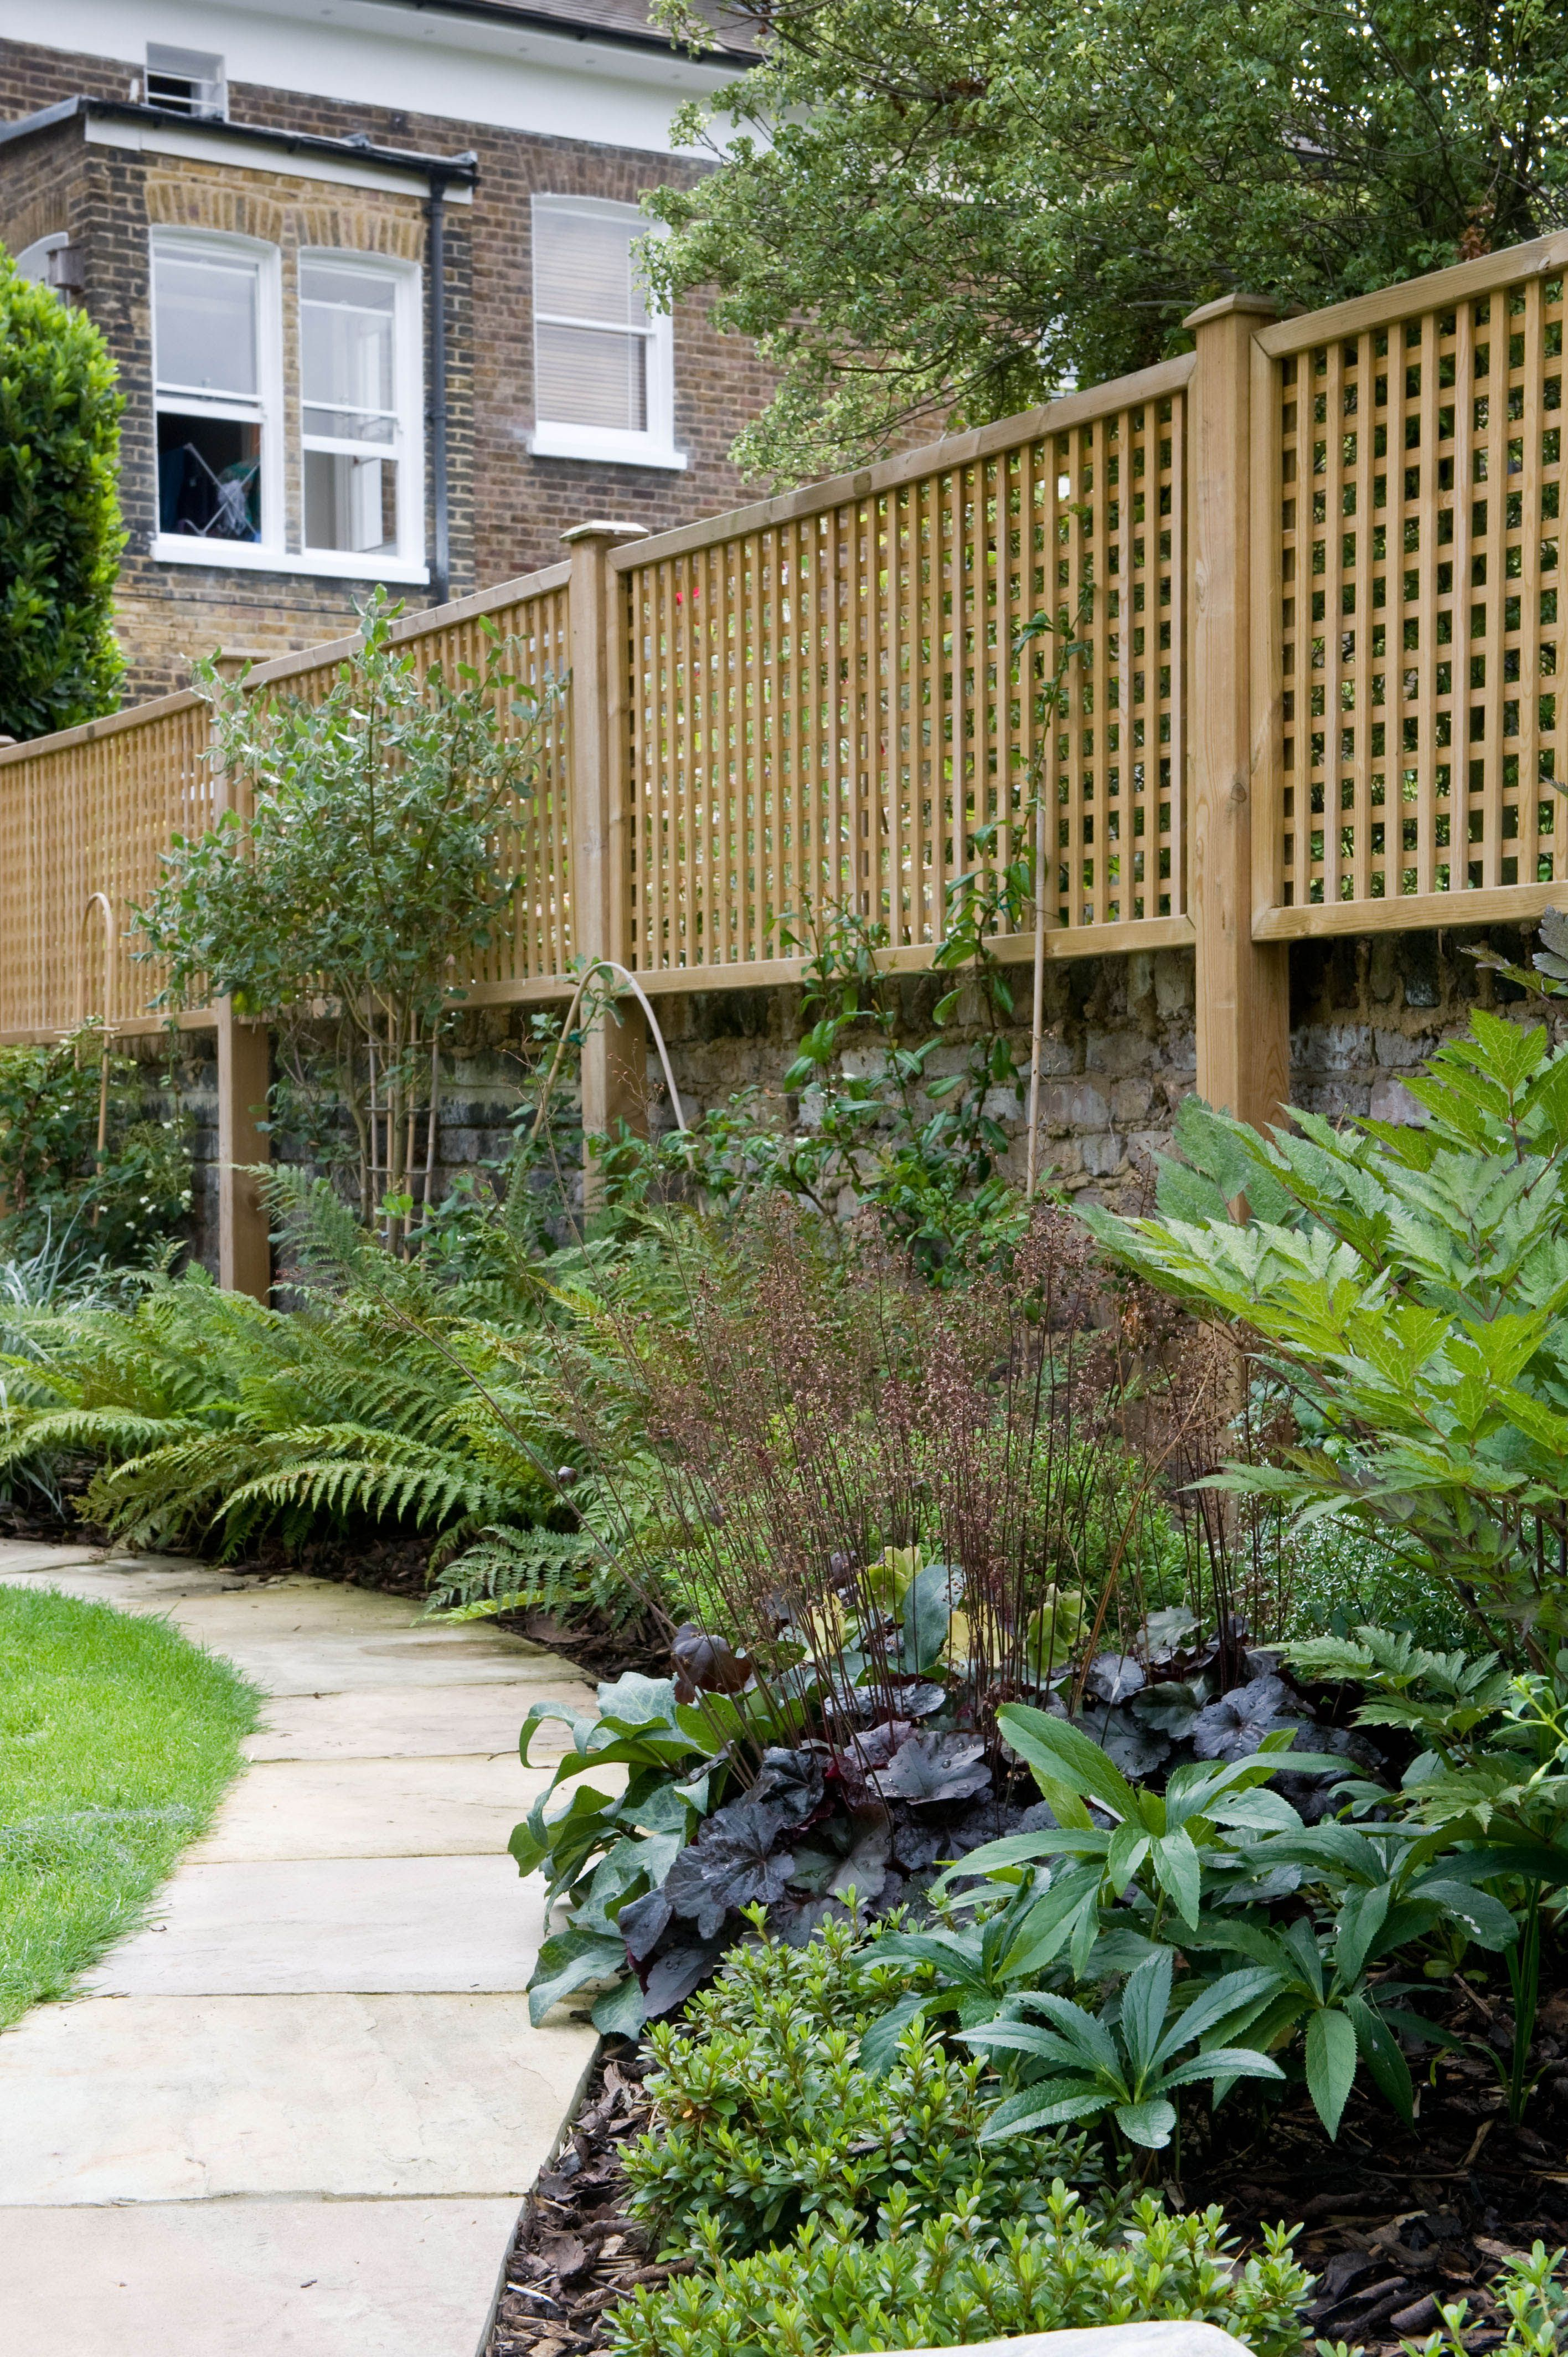 Jacksons Lattice Trellis Panels Featured In A National BALI Award Winning  Garden. Great Garden Inspiration